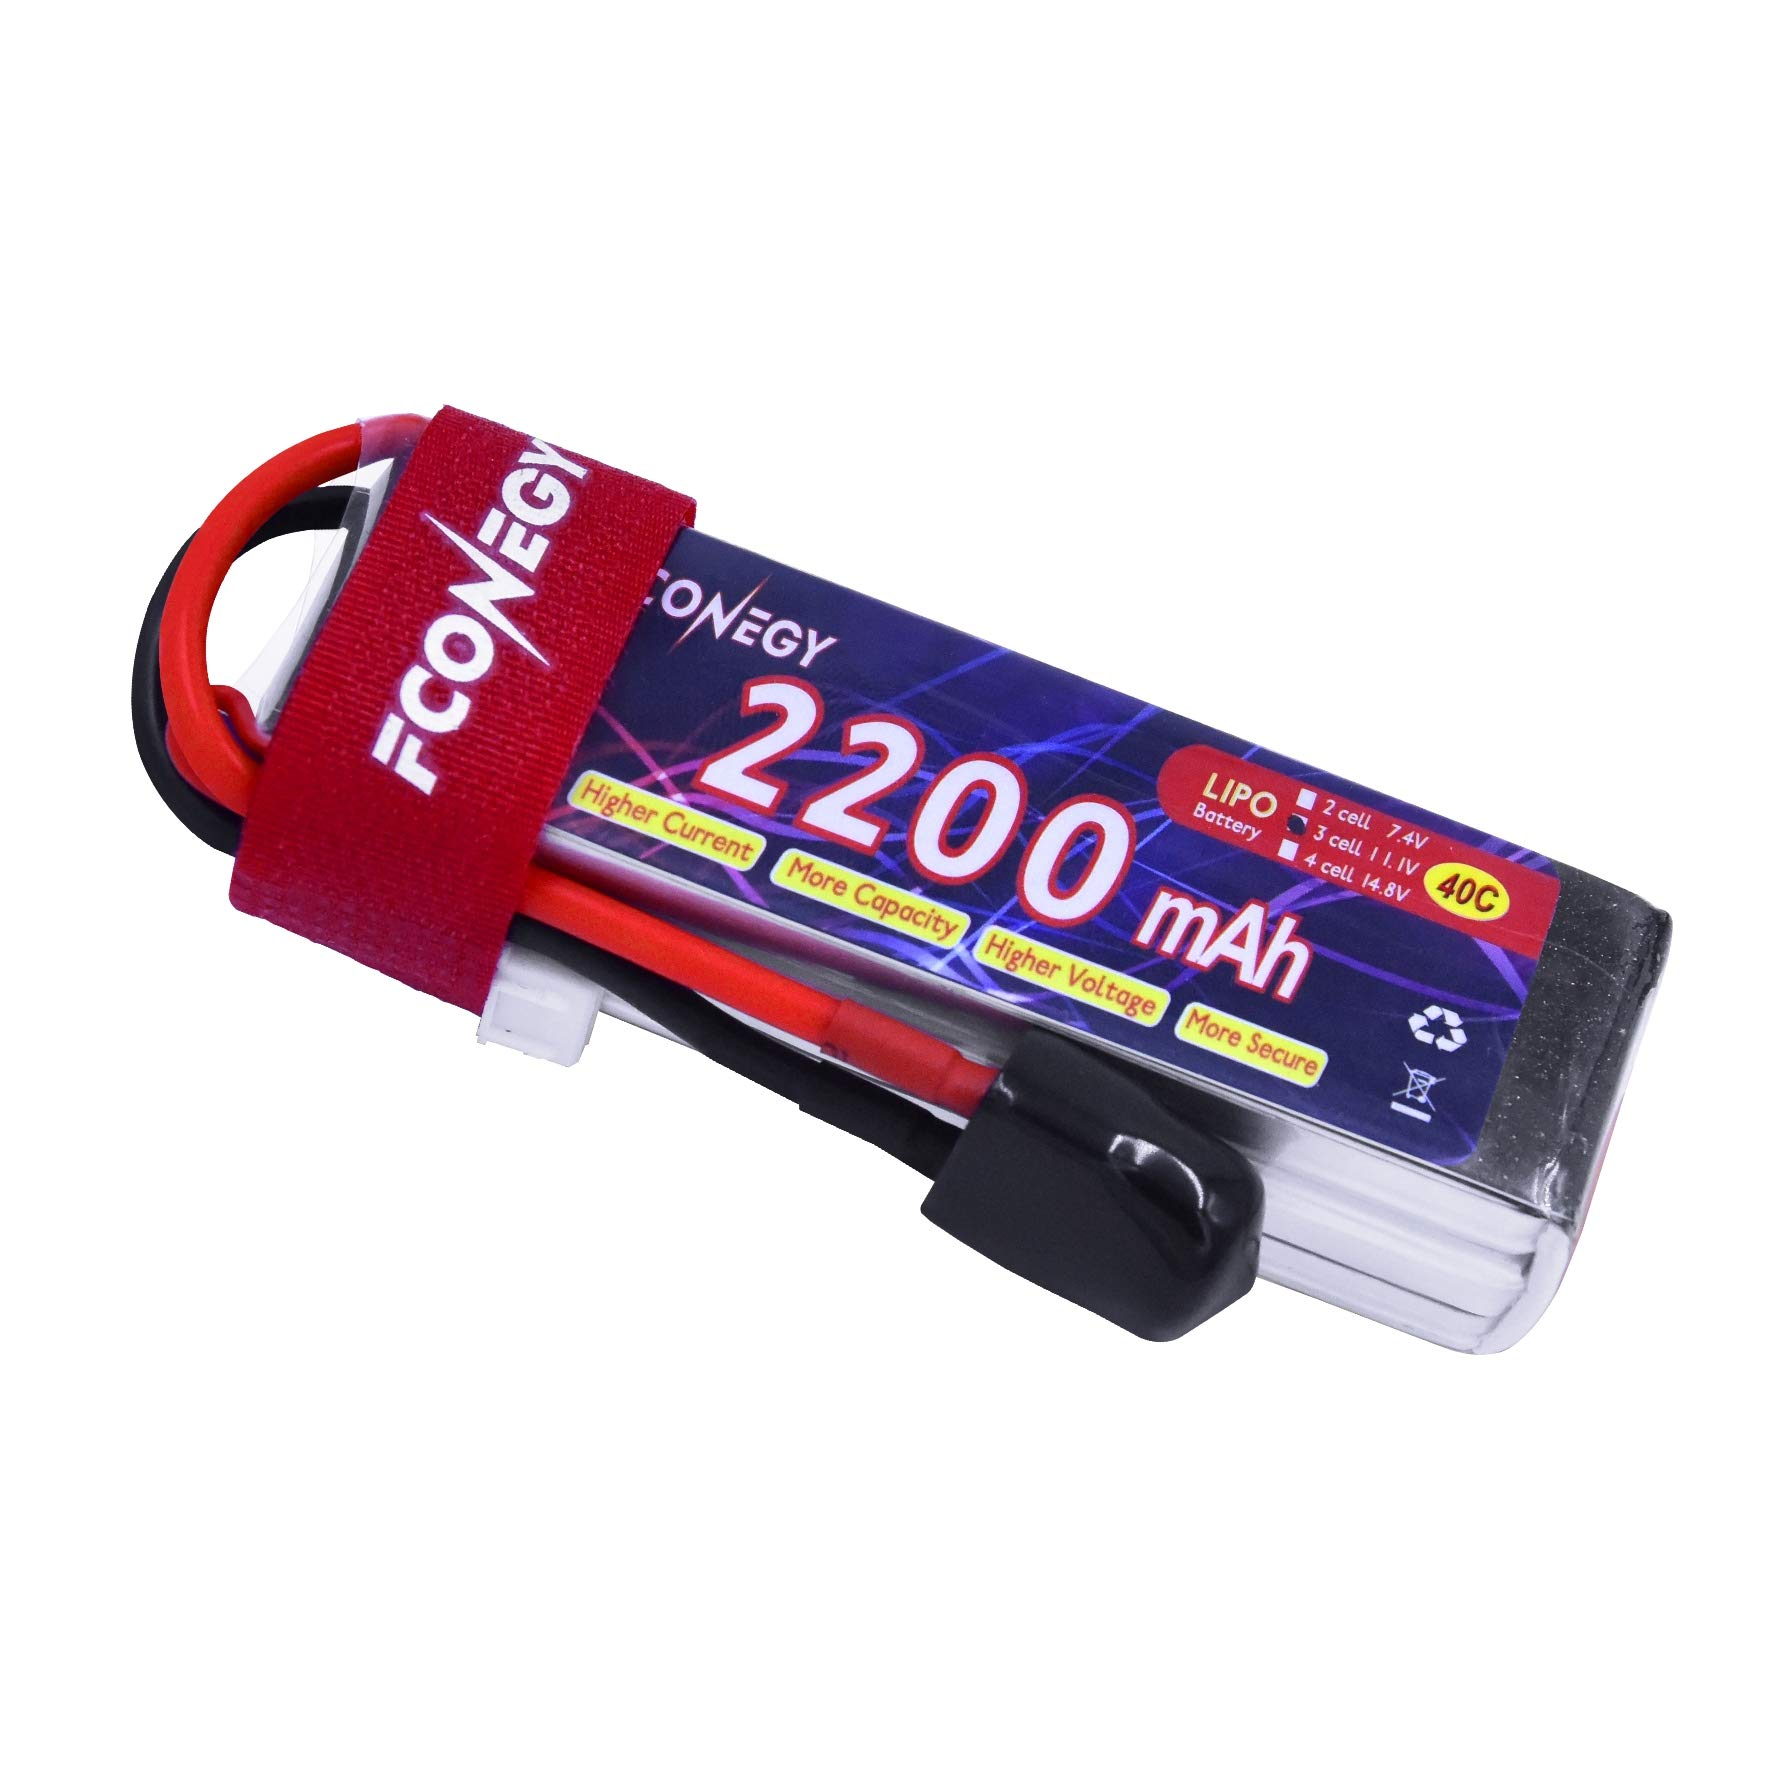 FCONEGY 3S 2200mAh 11.1V 40C Lipo Battery Pack with XT60 Plug for FPV/Quadcopter/Drone/RC Airplane/Helicopter